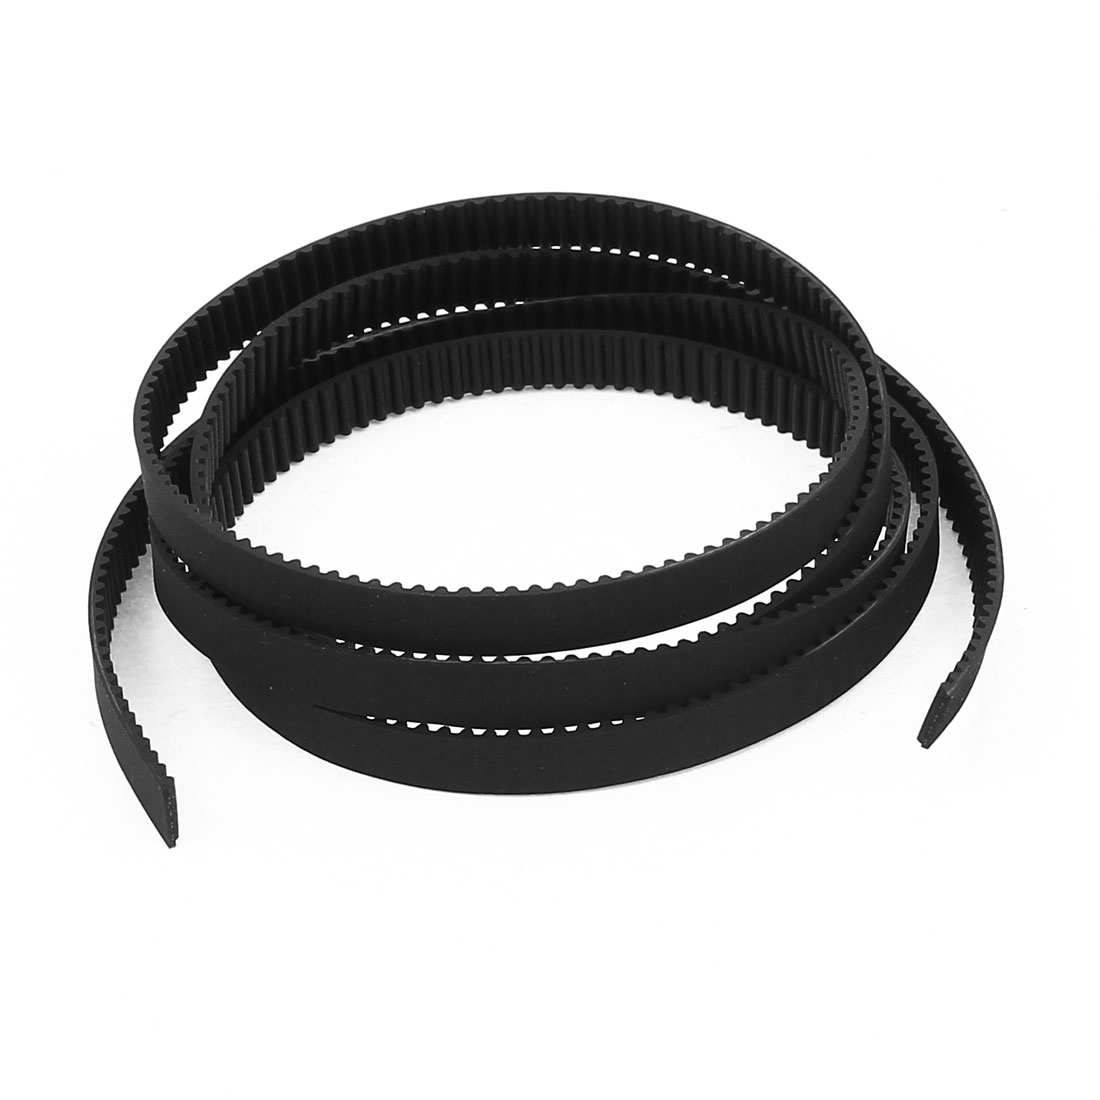 3D Printer 2GT 6mm Width 2mm Pitch Rubber Open Loop Precision Timing Belt 1M